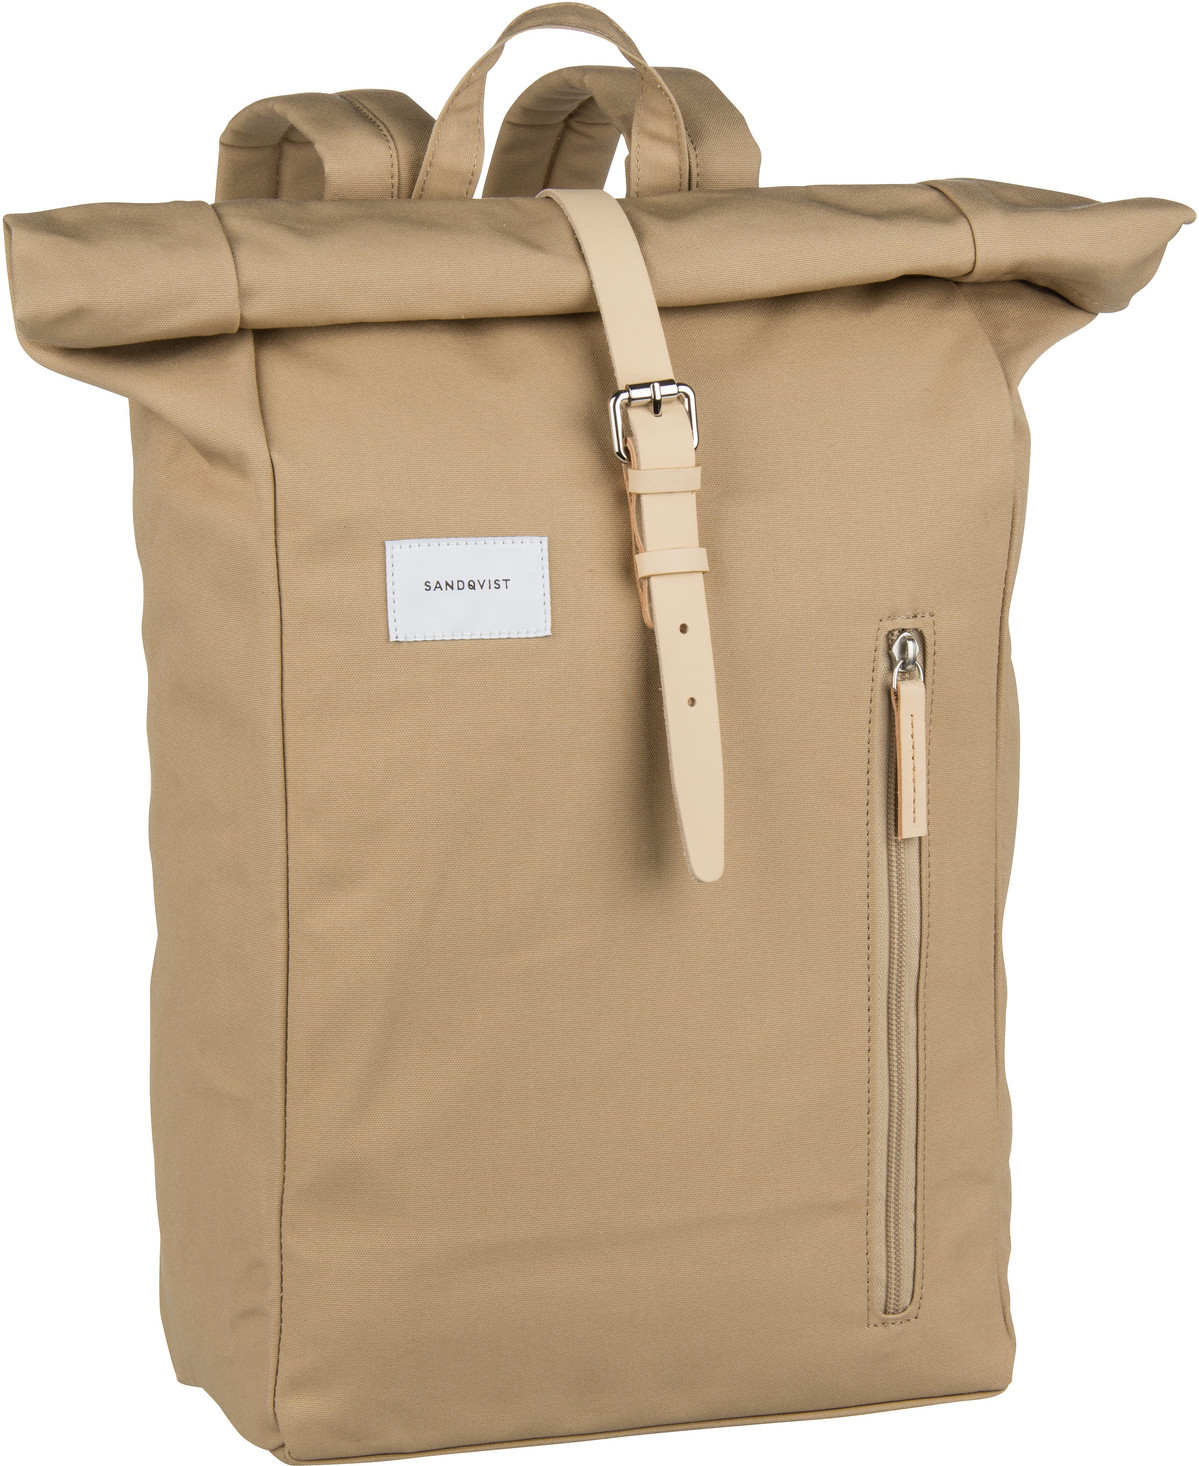 Laptoprucksack Dante Backpack Beige/Natural Leather (18 Liter)